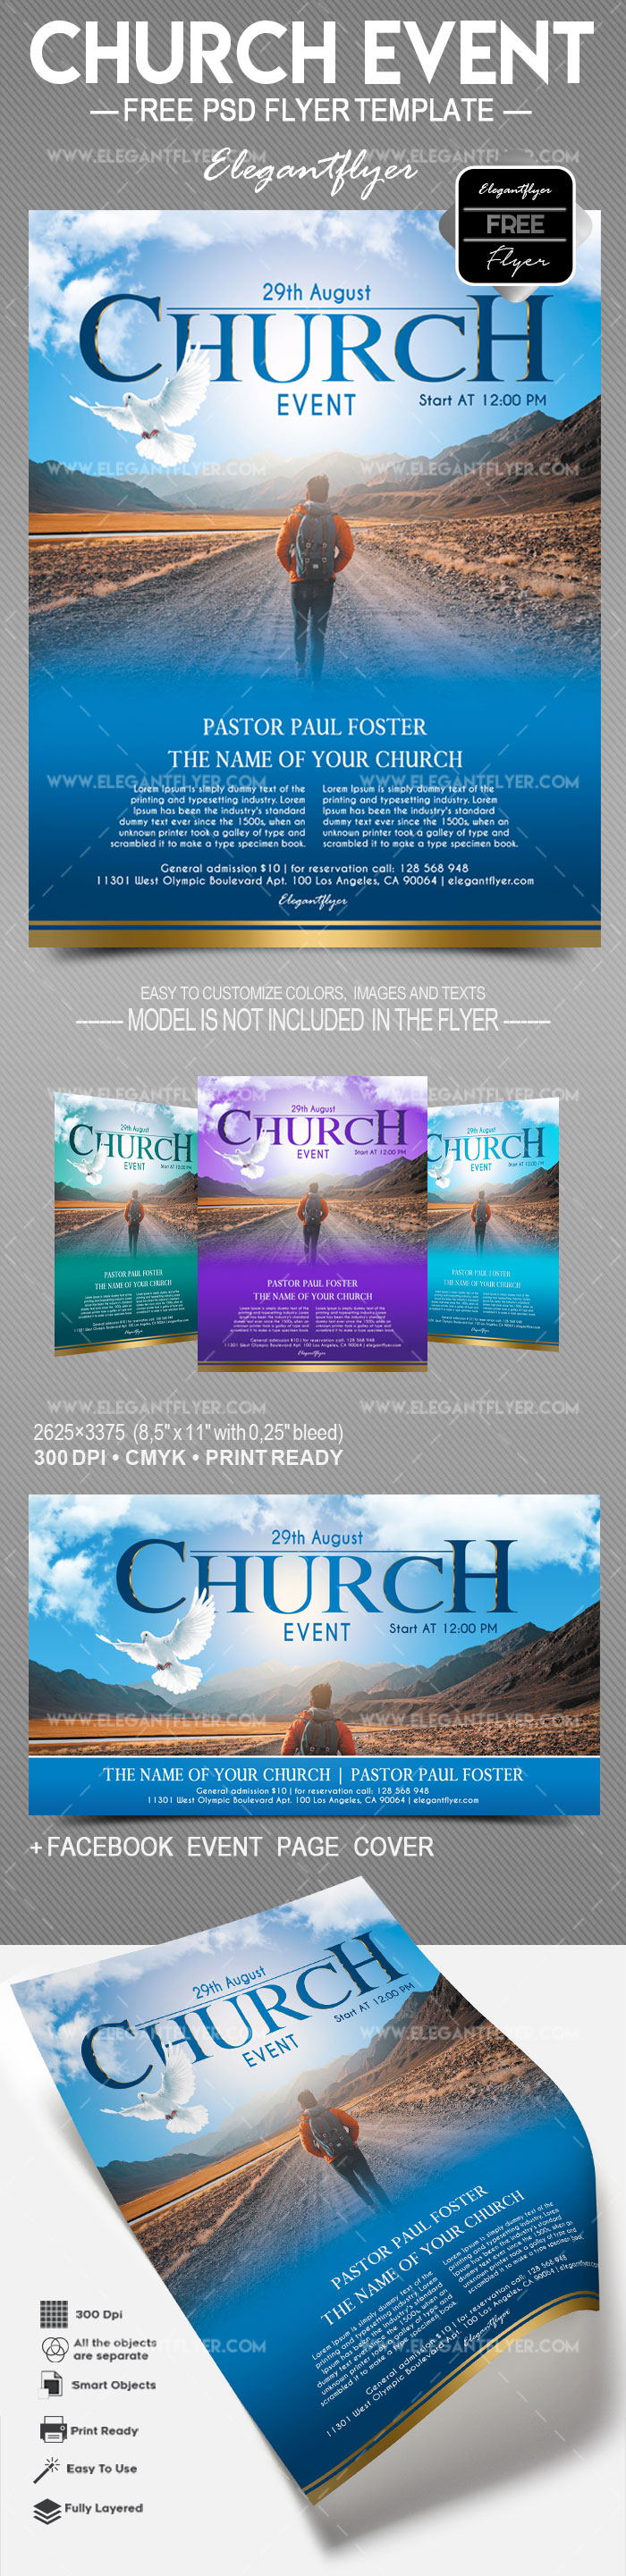 Church Event – Free Flyer PSD Template